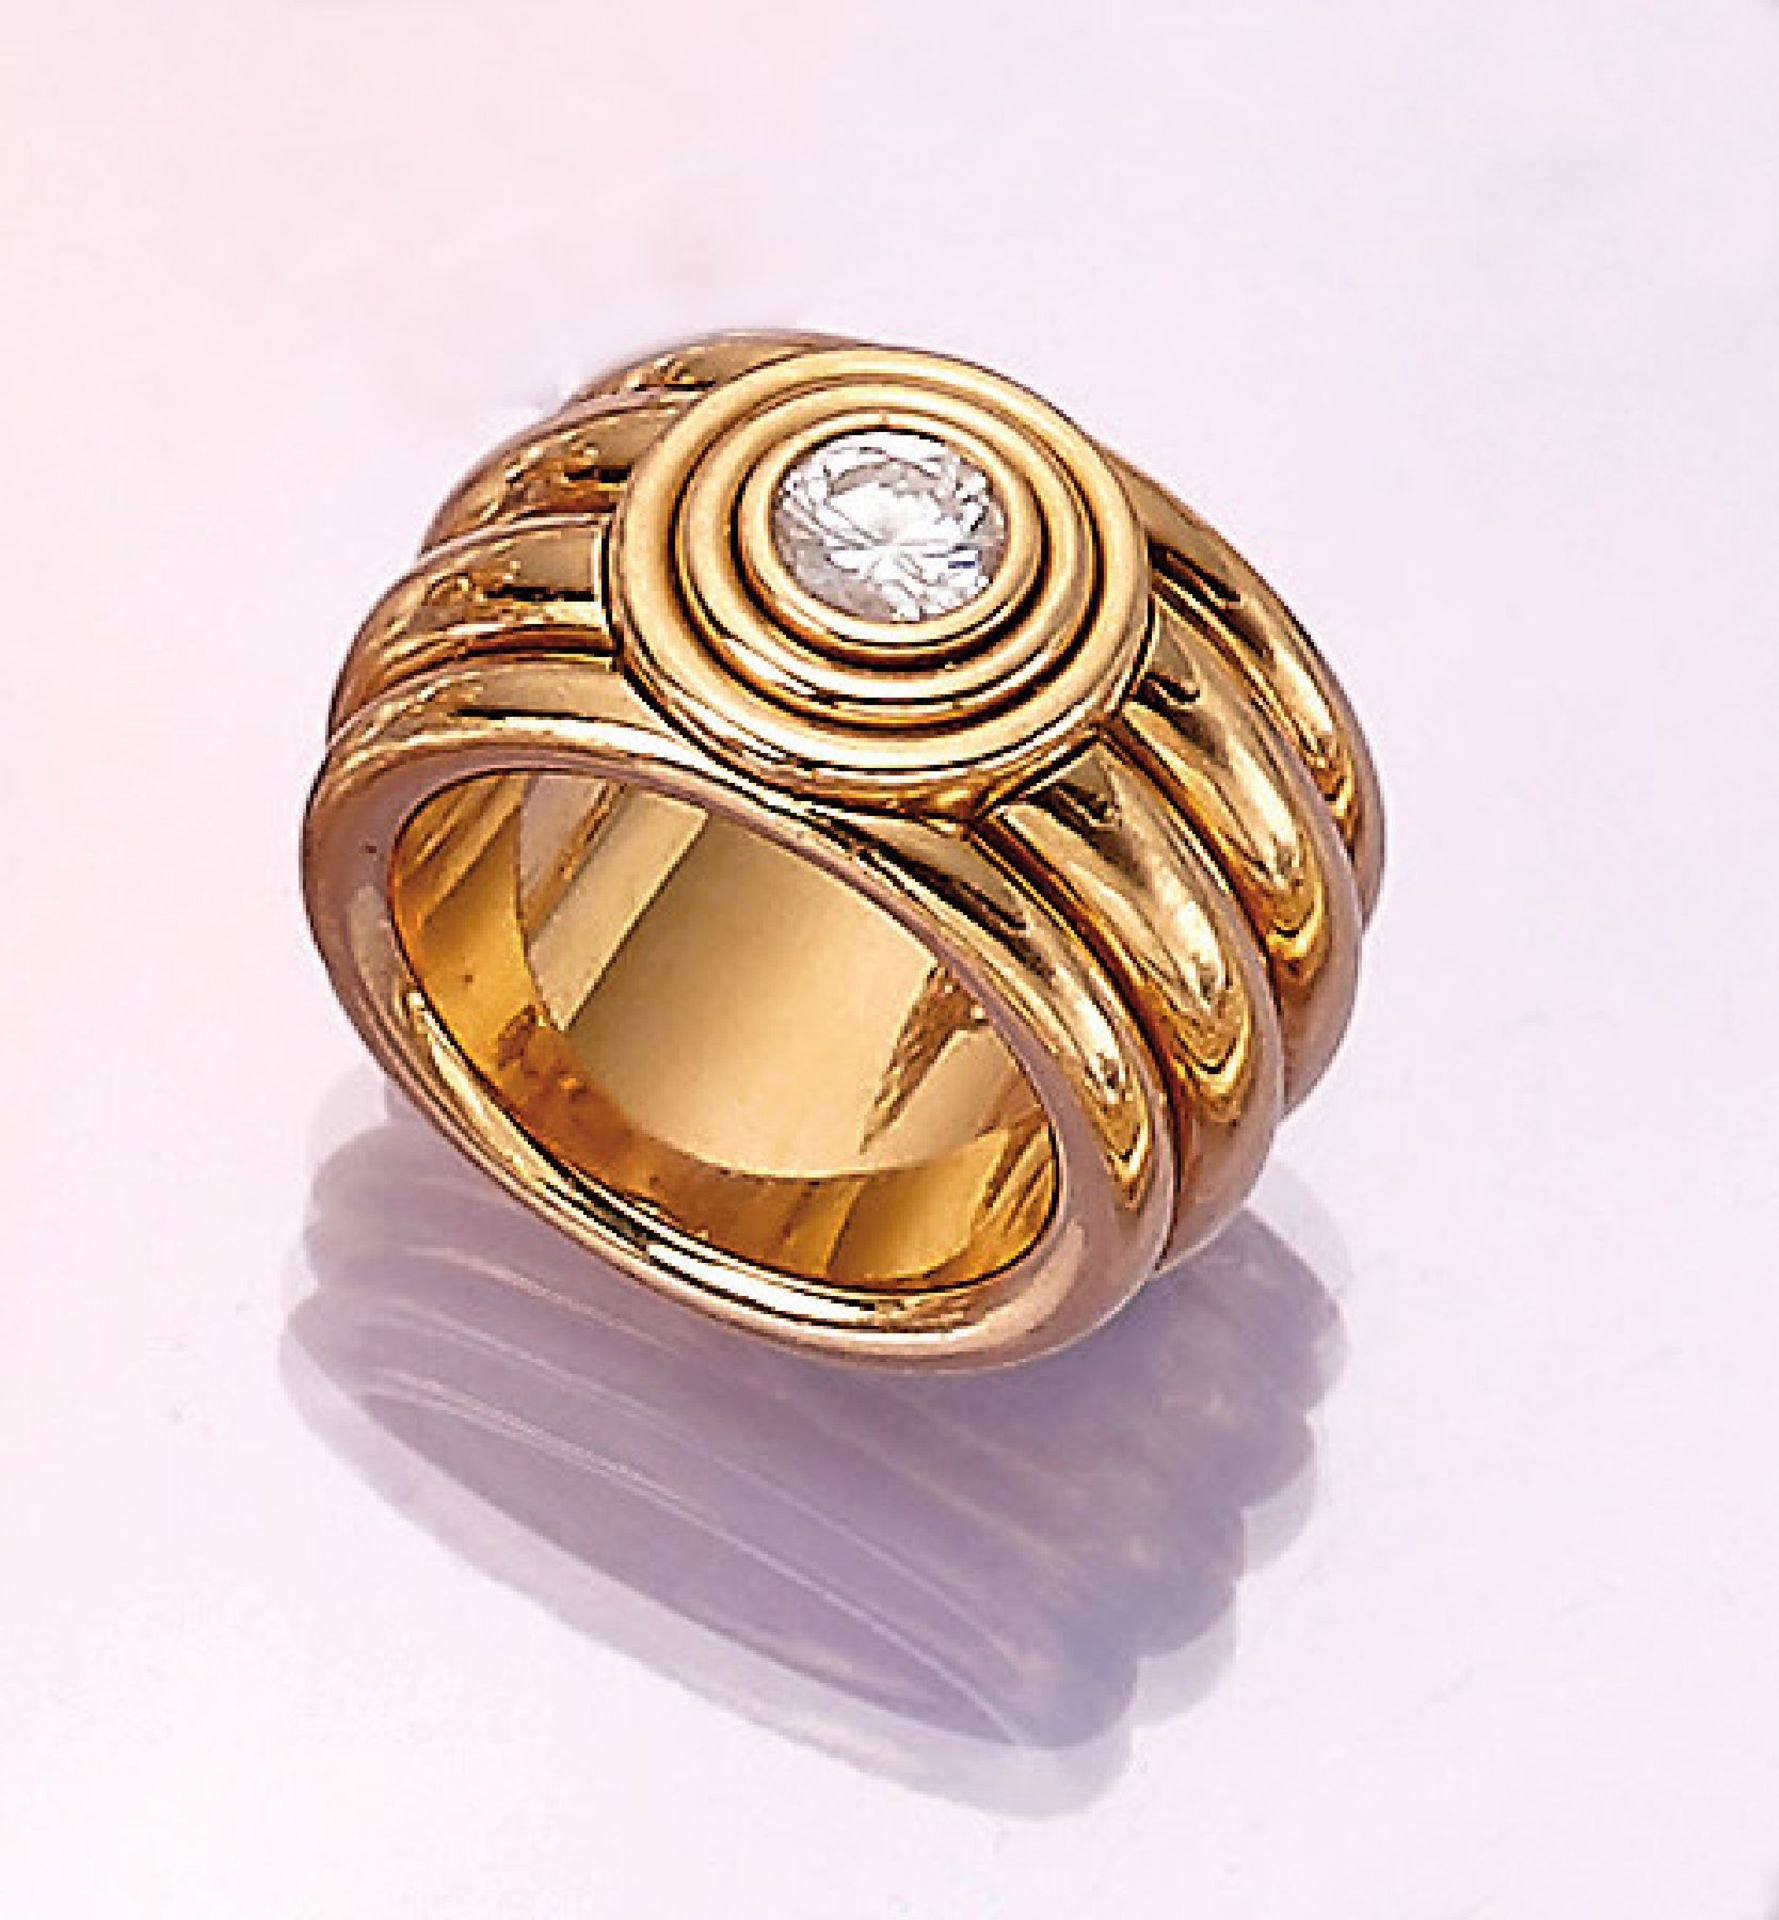 Los 31509 - 18 kt gold ring with brilliant , YG 750/000,wide, grooved splint, 1 brilliant approx. 0.60ct